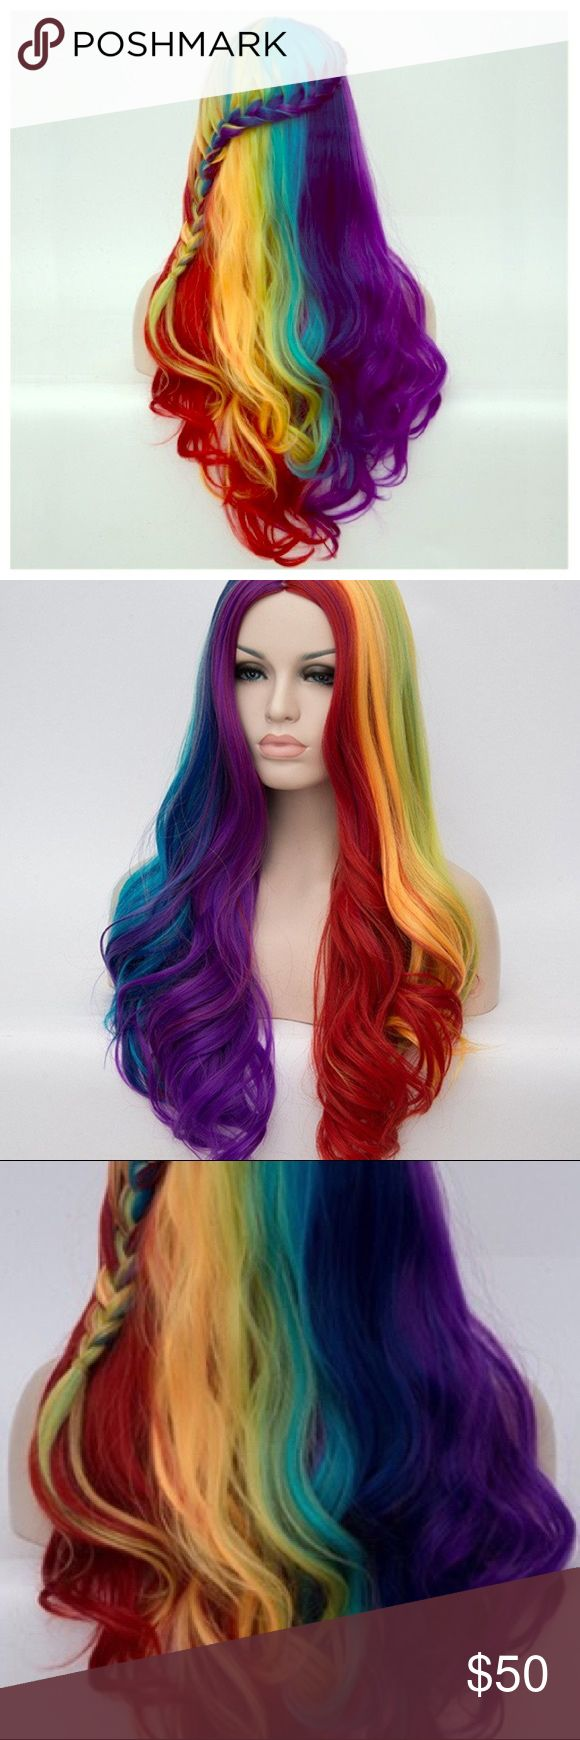 Rainbow  braided Heat Resistant Wig⭐️ Rainbow Bright , Unicorn , Mermaid , Studio 54  Halloween Wig! CosPlay/Halloween Heat Resistant Rainbow Braided Wig. 28-30 inches long. Comes already braided, looks exactly like pics (braid can be undone if desired as shown in last pic) new in bag with storage bag & hair cap (to hide natural hair while wearing) Has an adjustable strap to make it fit perfectly (last pic shows inside, except this one is nude & doesn't have the front clip) Super high…